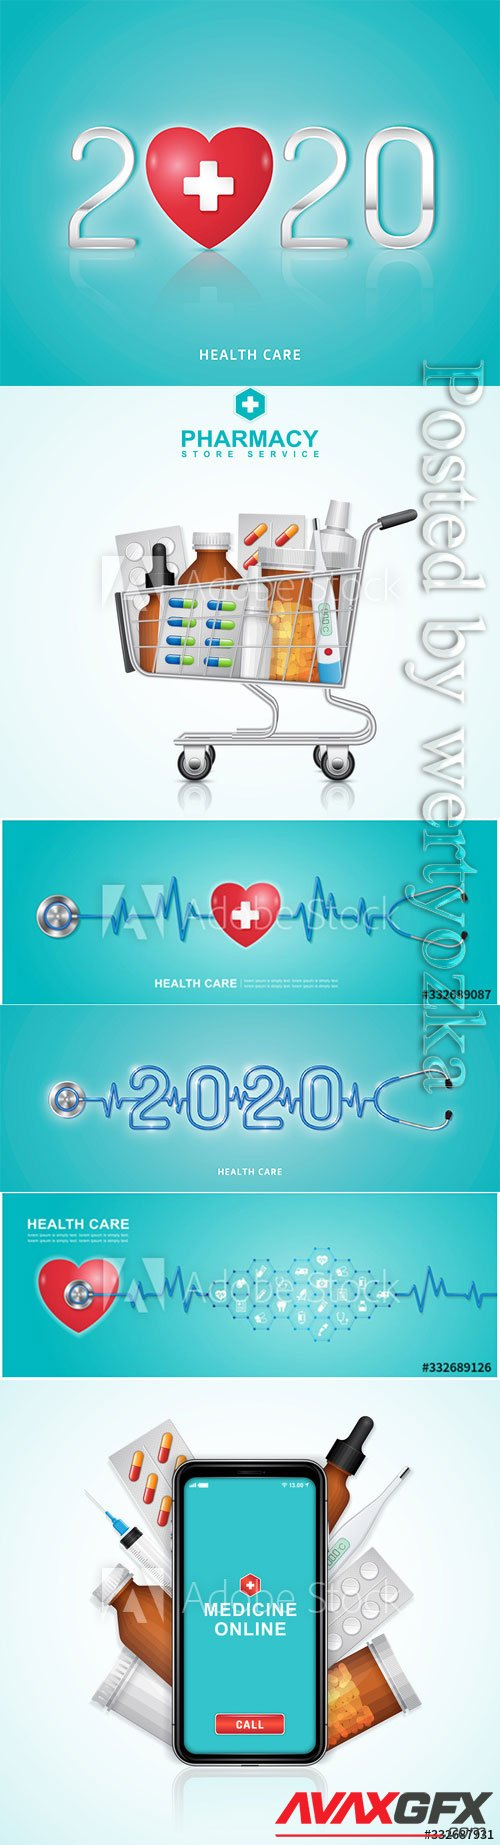 Healthcare and medical concept vector design